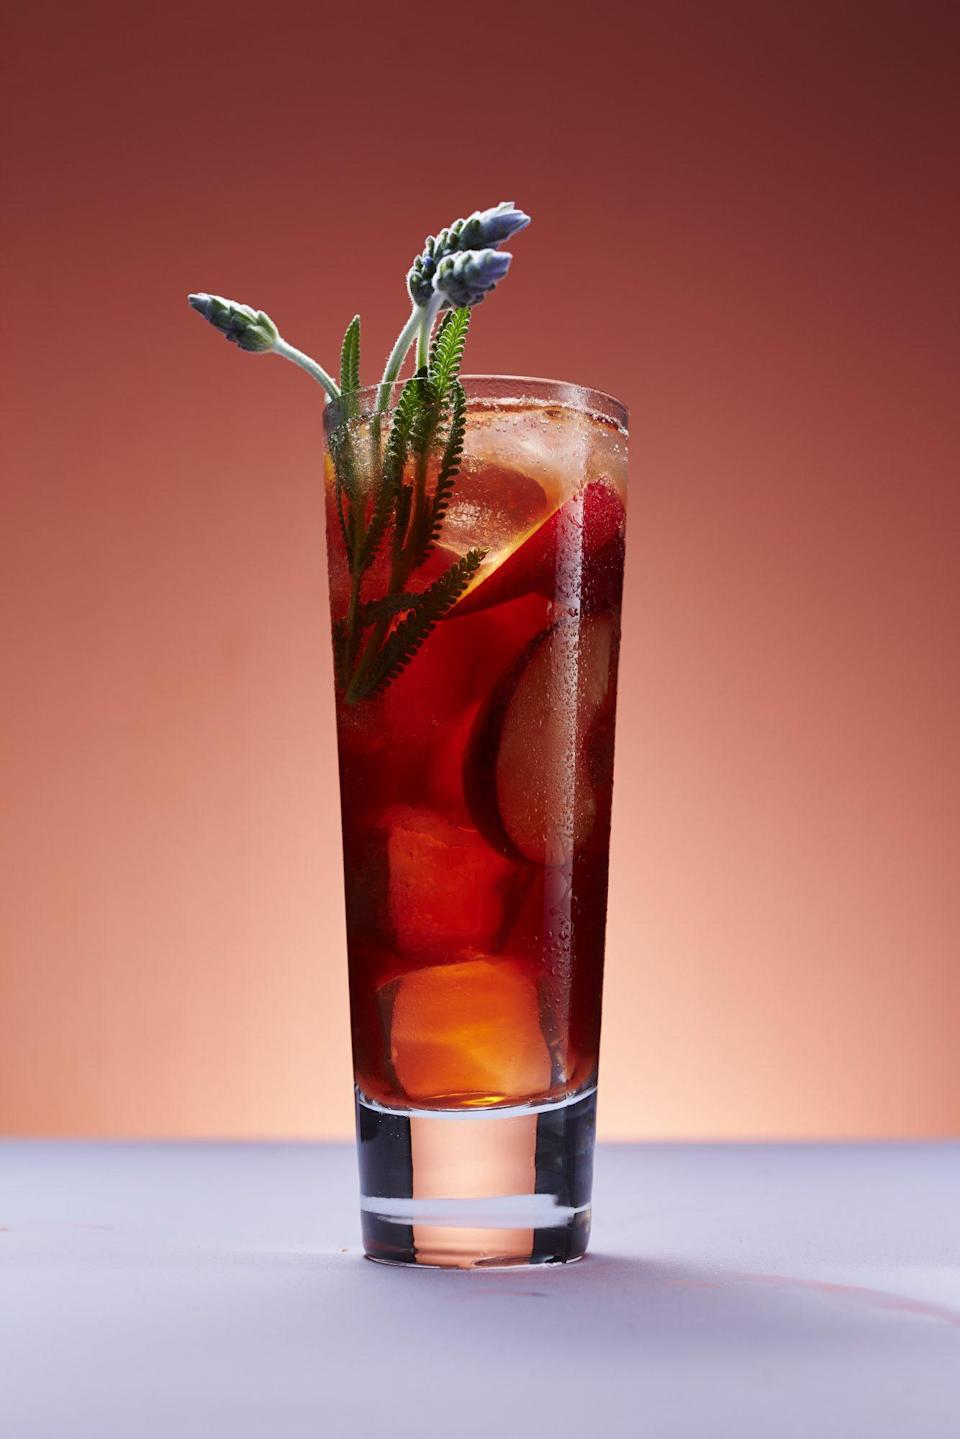 """<p><strong>Recipe: </strong><a href=""""https://www.southernliving.com/recipes/lavender-plum-shrub-recipe"""" rel=""""nofollow noopener"""" target=""""_blank"""" data-ylk=""""slk:Lavender-Plum Shrub"""" class=""""link rapid-noclick-resp""""><strong>Lavender-Plum Shrub</strong></a></p> <p>If you haven't tried a vinegar-based shrub cocktail before, allow us to make the introduction. Our version calls for apple cider vinegar, red plums, vanilla, and fresh lavender to create the fruit-infused sipper. It needs a few days to chill in the fridge before serving so the flavors meld.</p>"""